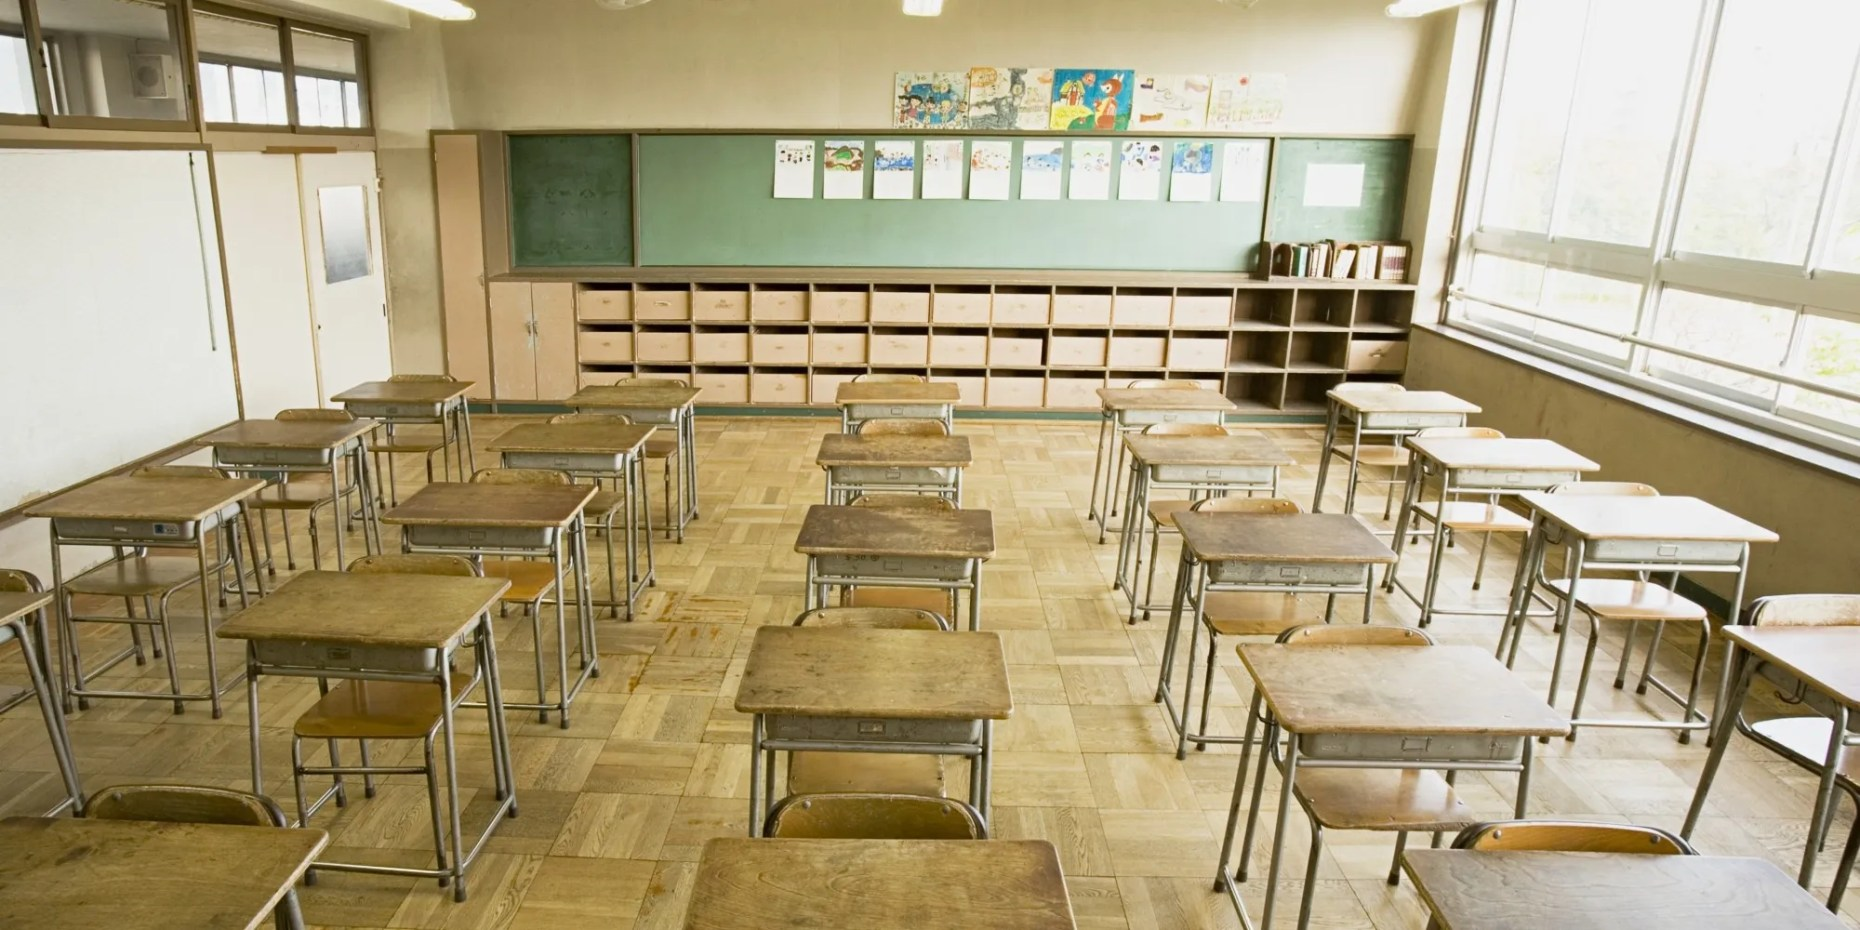 Chairs and desks in a classroom